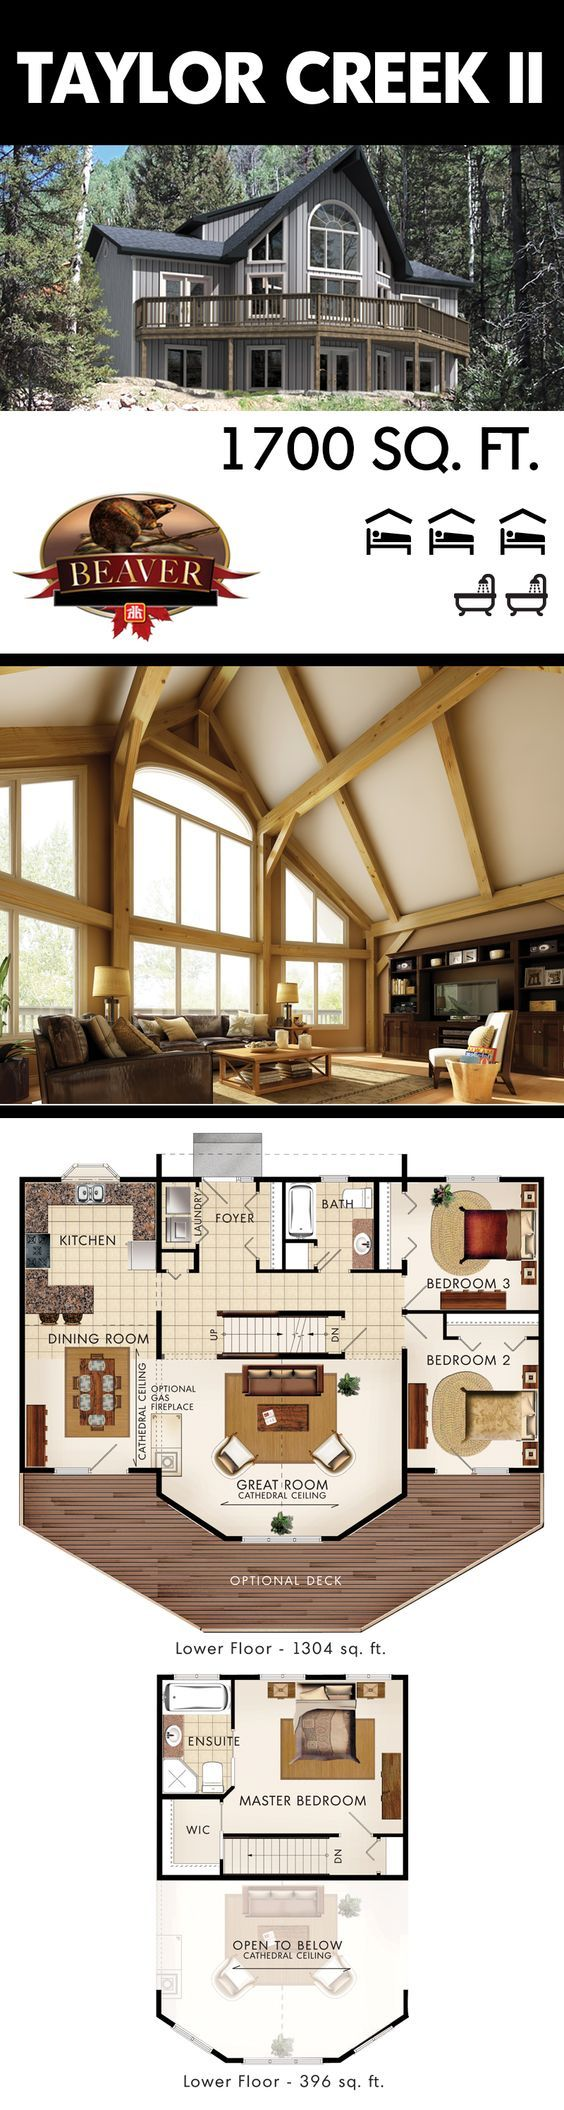 Taylor Creek Ii Beaver Homes And Cottages House Plans House Floor Plans